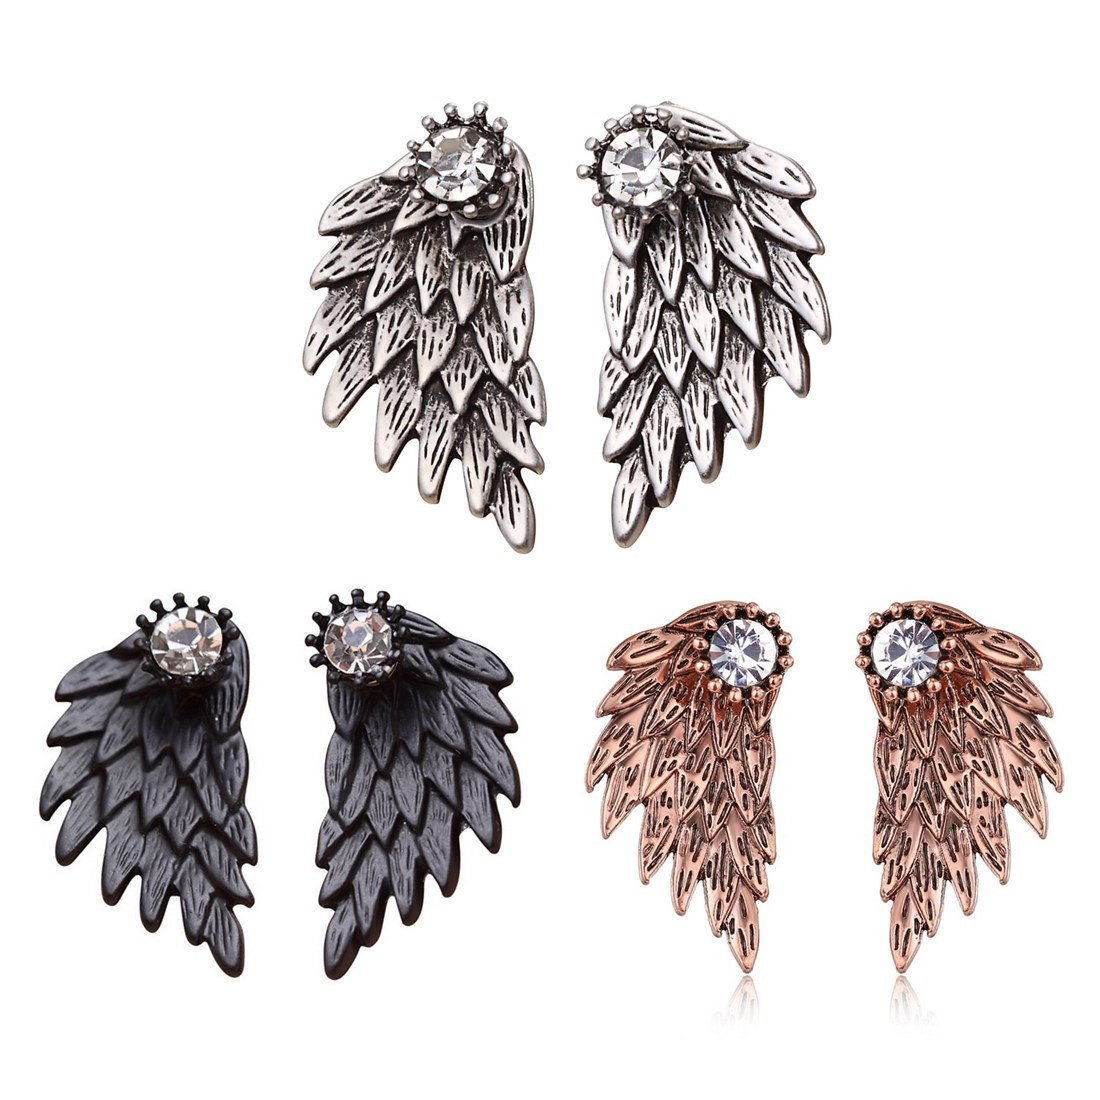 Cute Gothic Angel Wing Stud Earrings Ear Jacket for Women Unique Fashion MengPa Jewelry (Antique Silver+Black+Copper) by MengPa